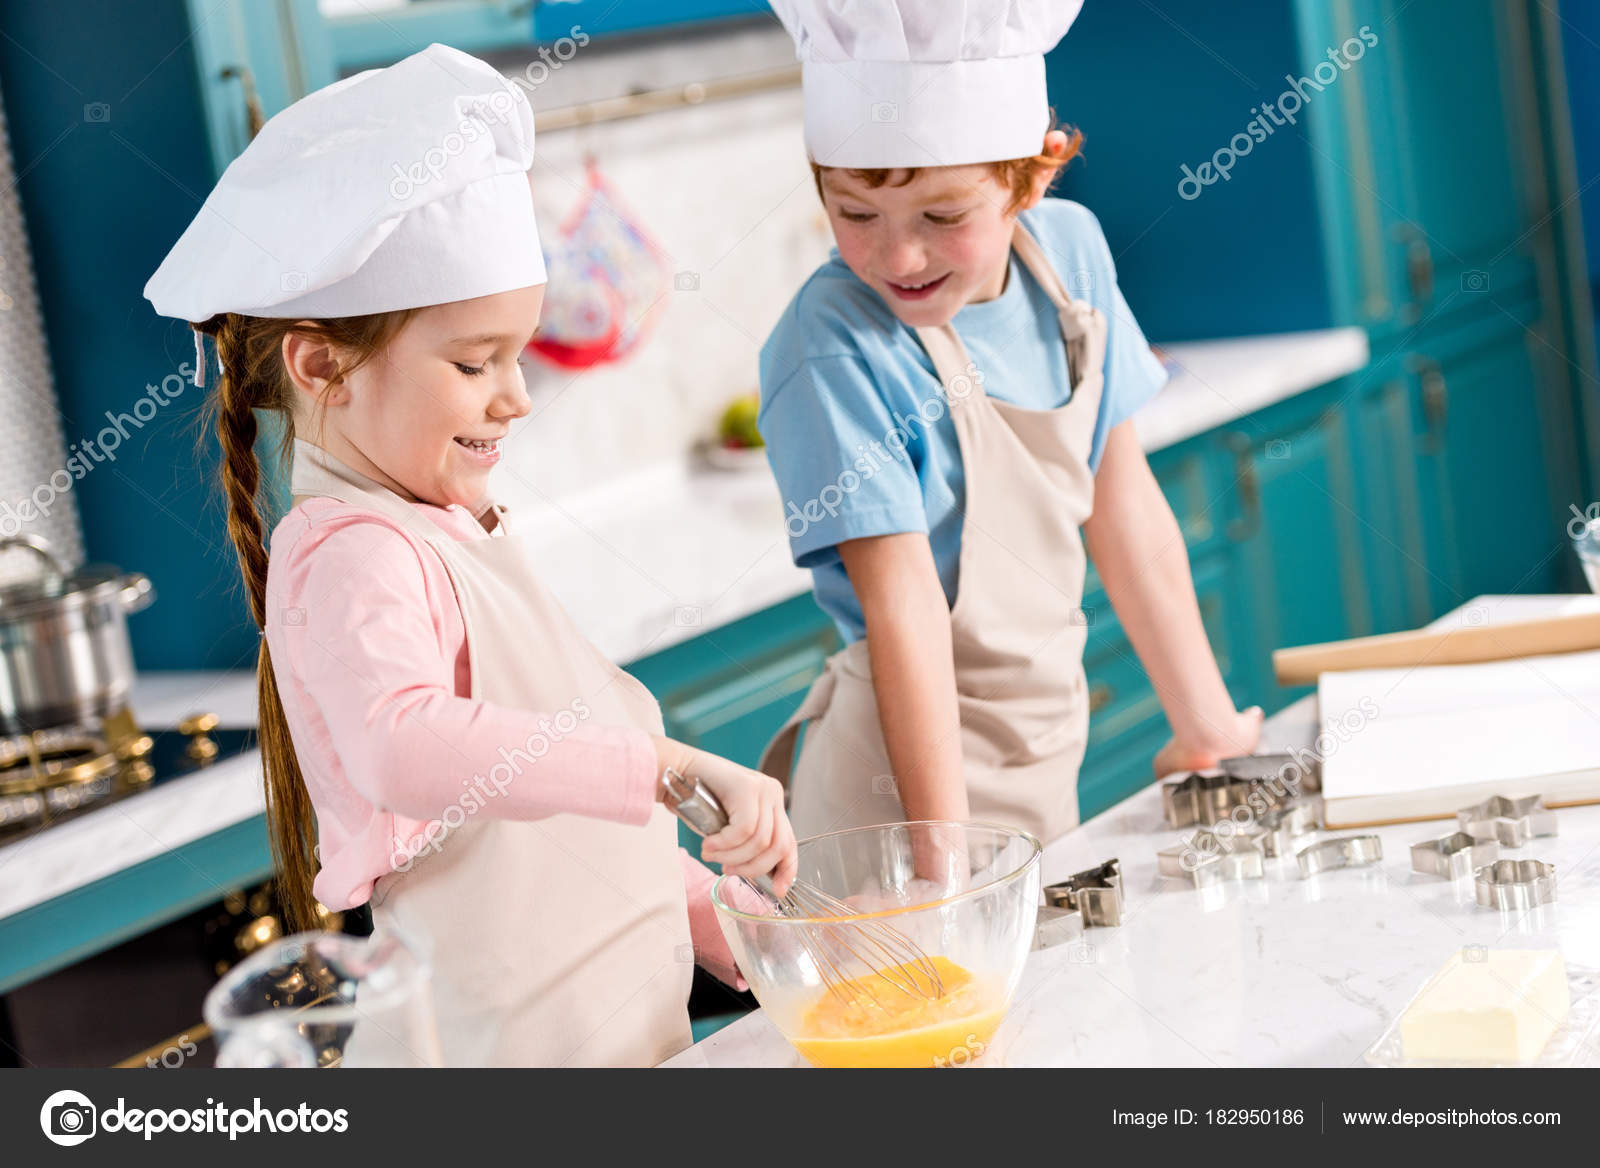 Adorable Smiling Children Chef Hats Aprons Making Dough Together ...